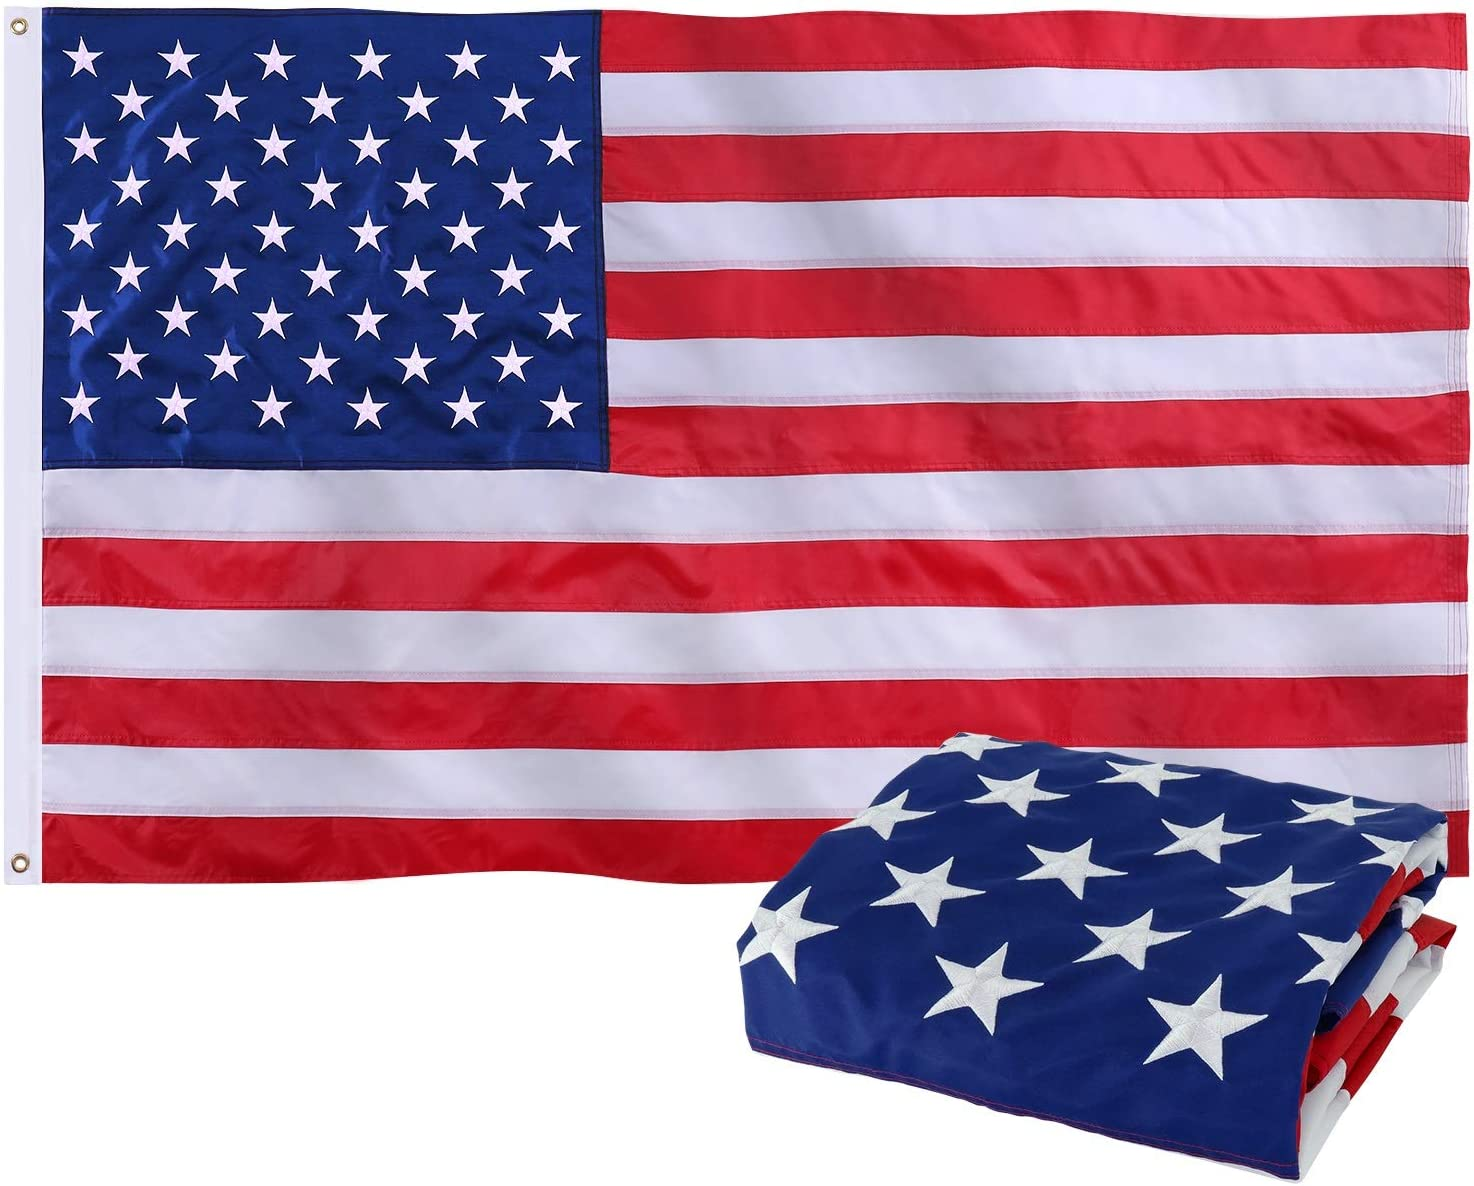 Jetlifee American Flag 3x5 Ft Nylon US Flag, Embroidered Stars, Sewn Stripes, Brass Grommets, Vivid Color UV Protection,Outdoor and Indoor Upgraded Durable USA Flags